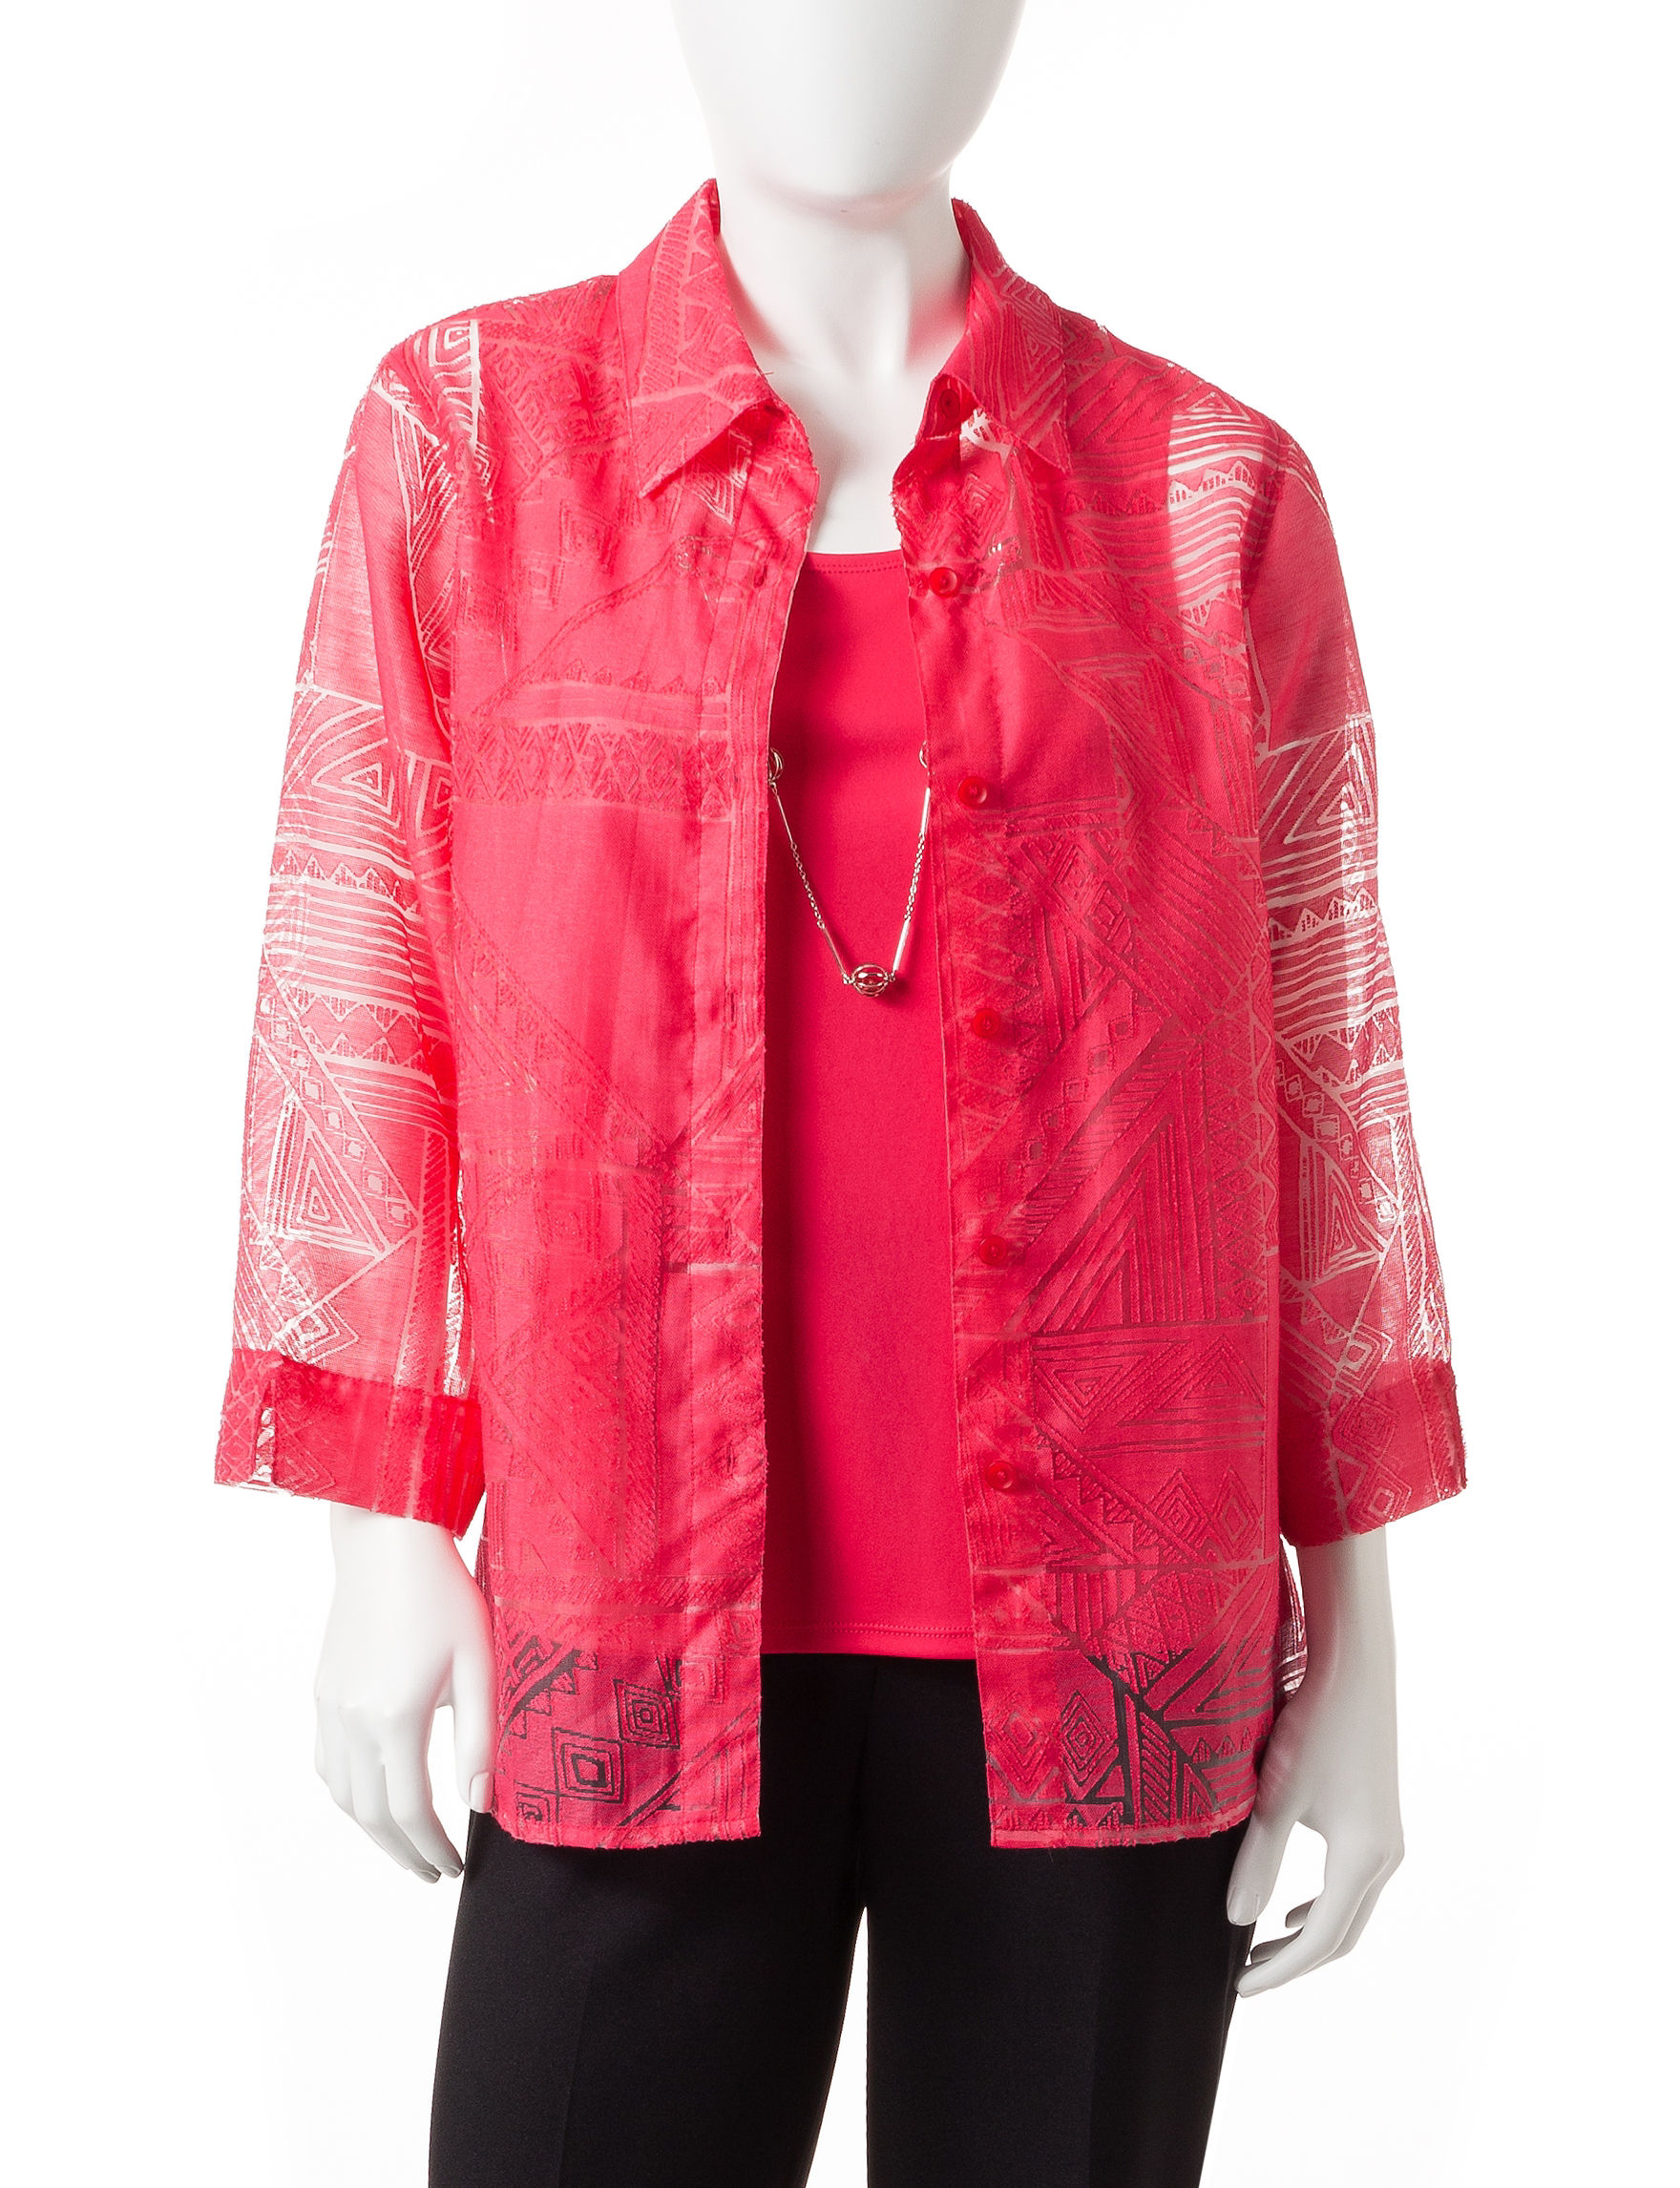 Alfred Dunner Pink Cardigans